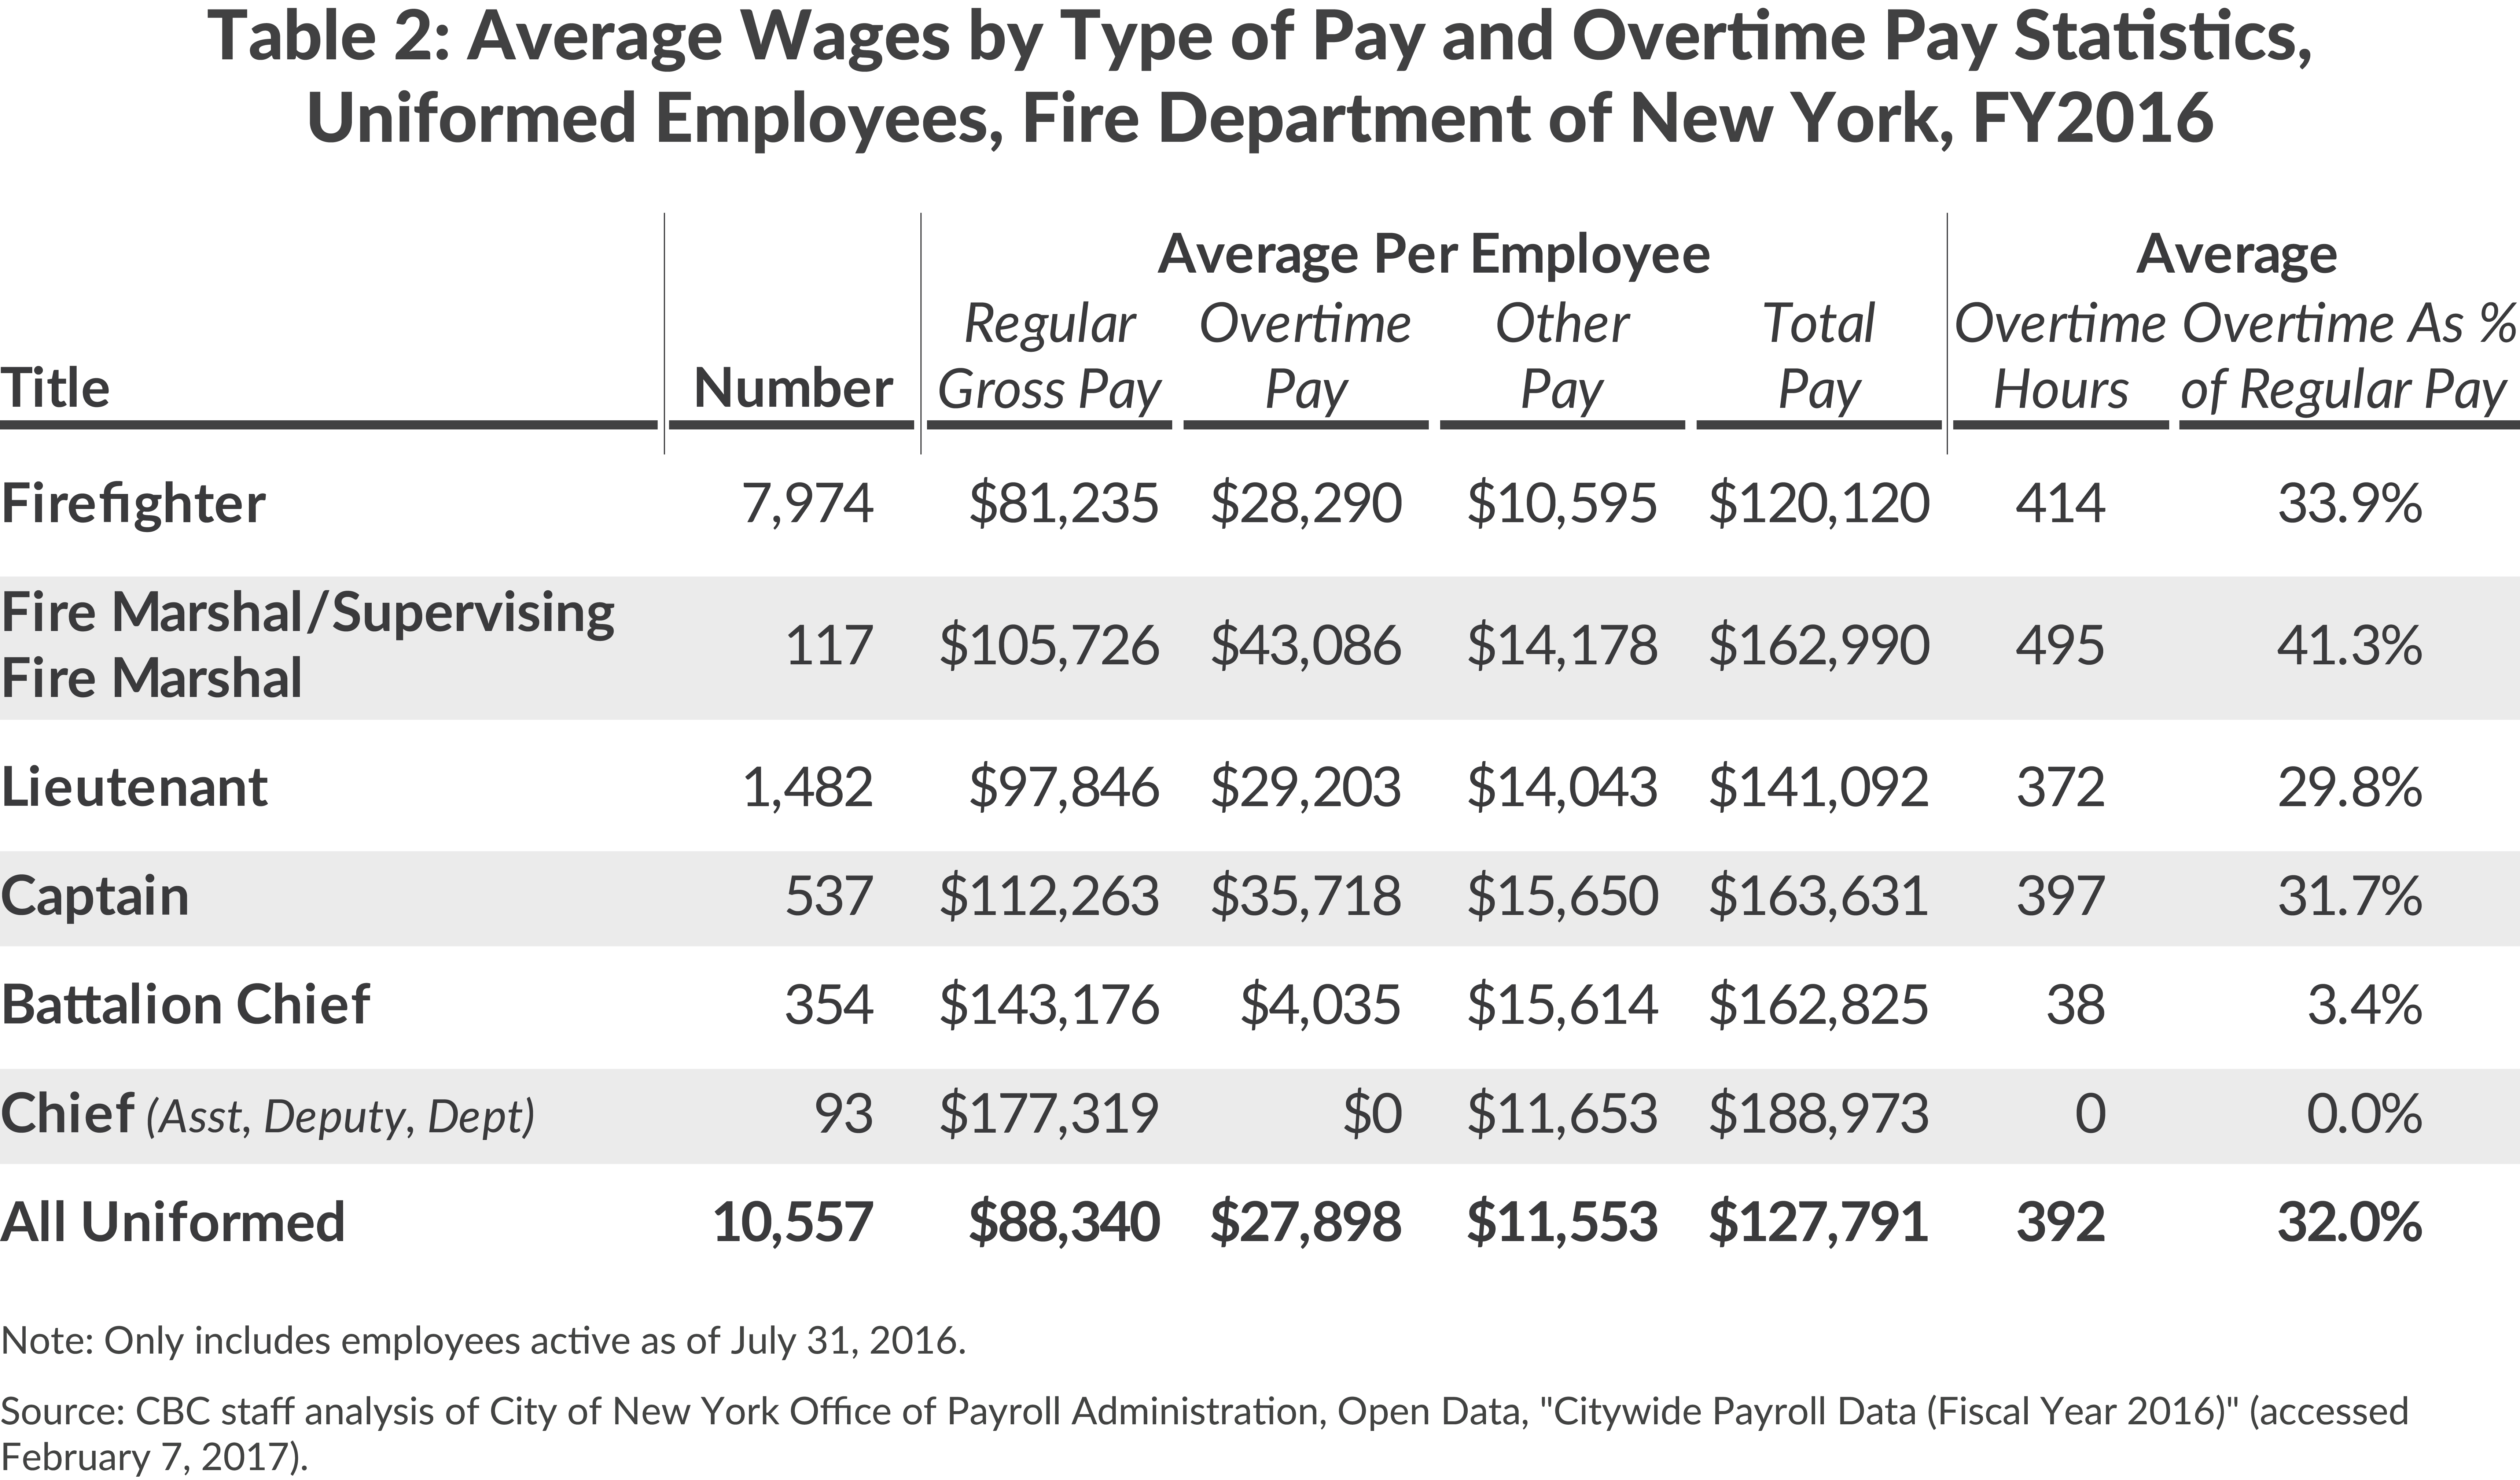 Average Wages and Overtime, FDNY, FY2016